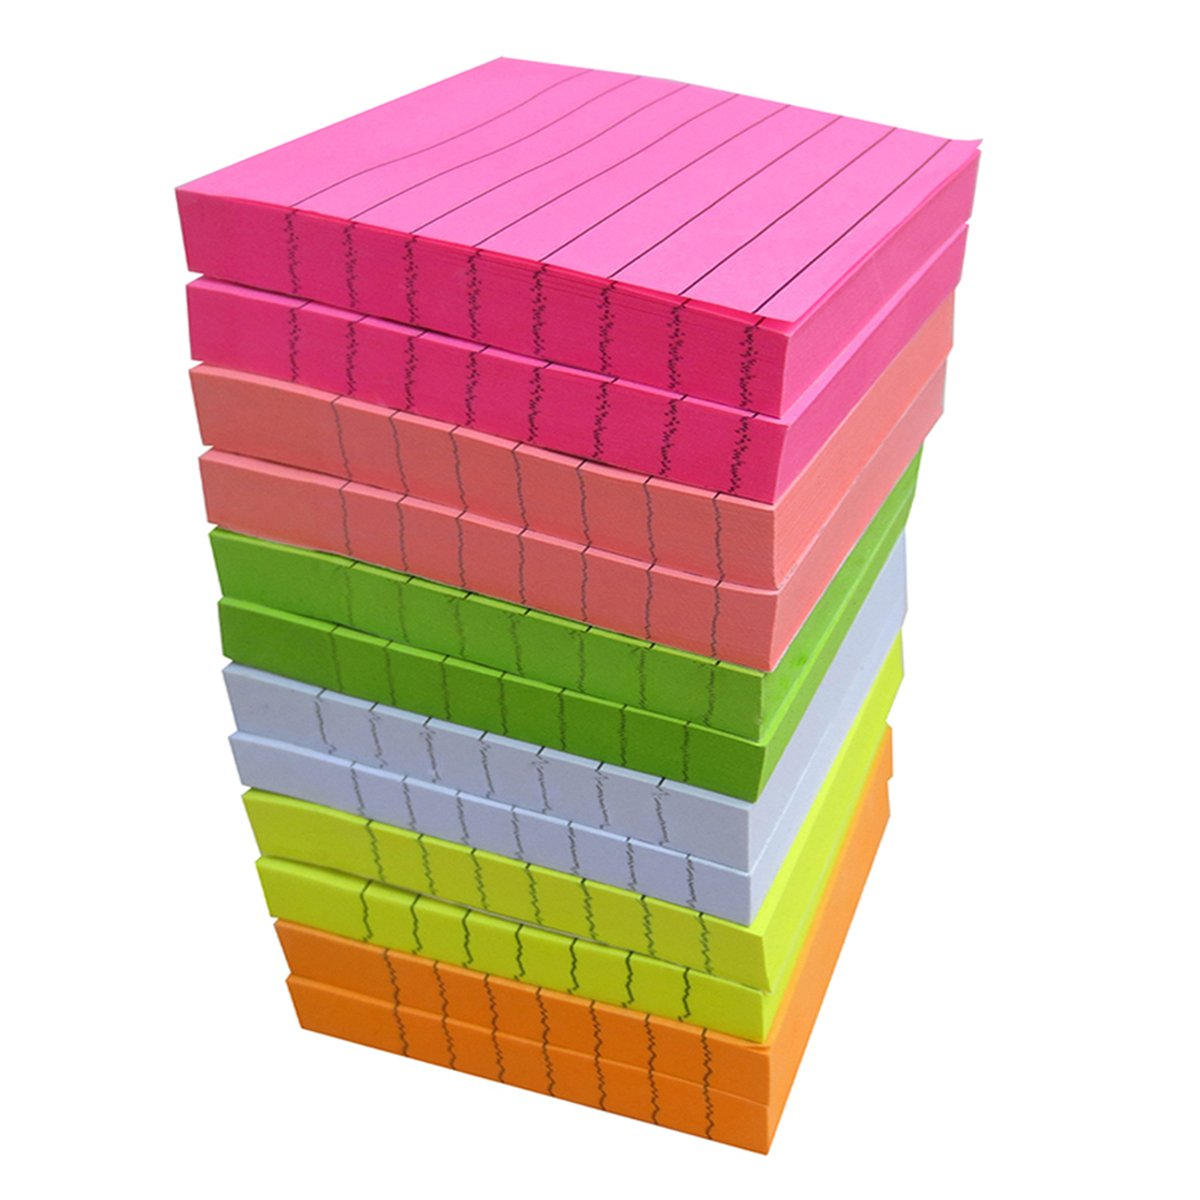 Creatiburg Sticky Note Pads Lined 12 Pads 100 Sheets/Pad 3x3 inches 6 Bright Colors Self-Stick Notes with Lines Easy Post Individually Wrapped and Carton Packaging Red Pink Green White Yellow Orange